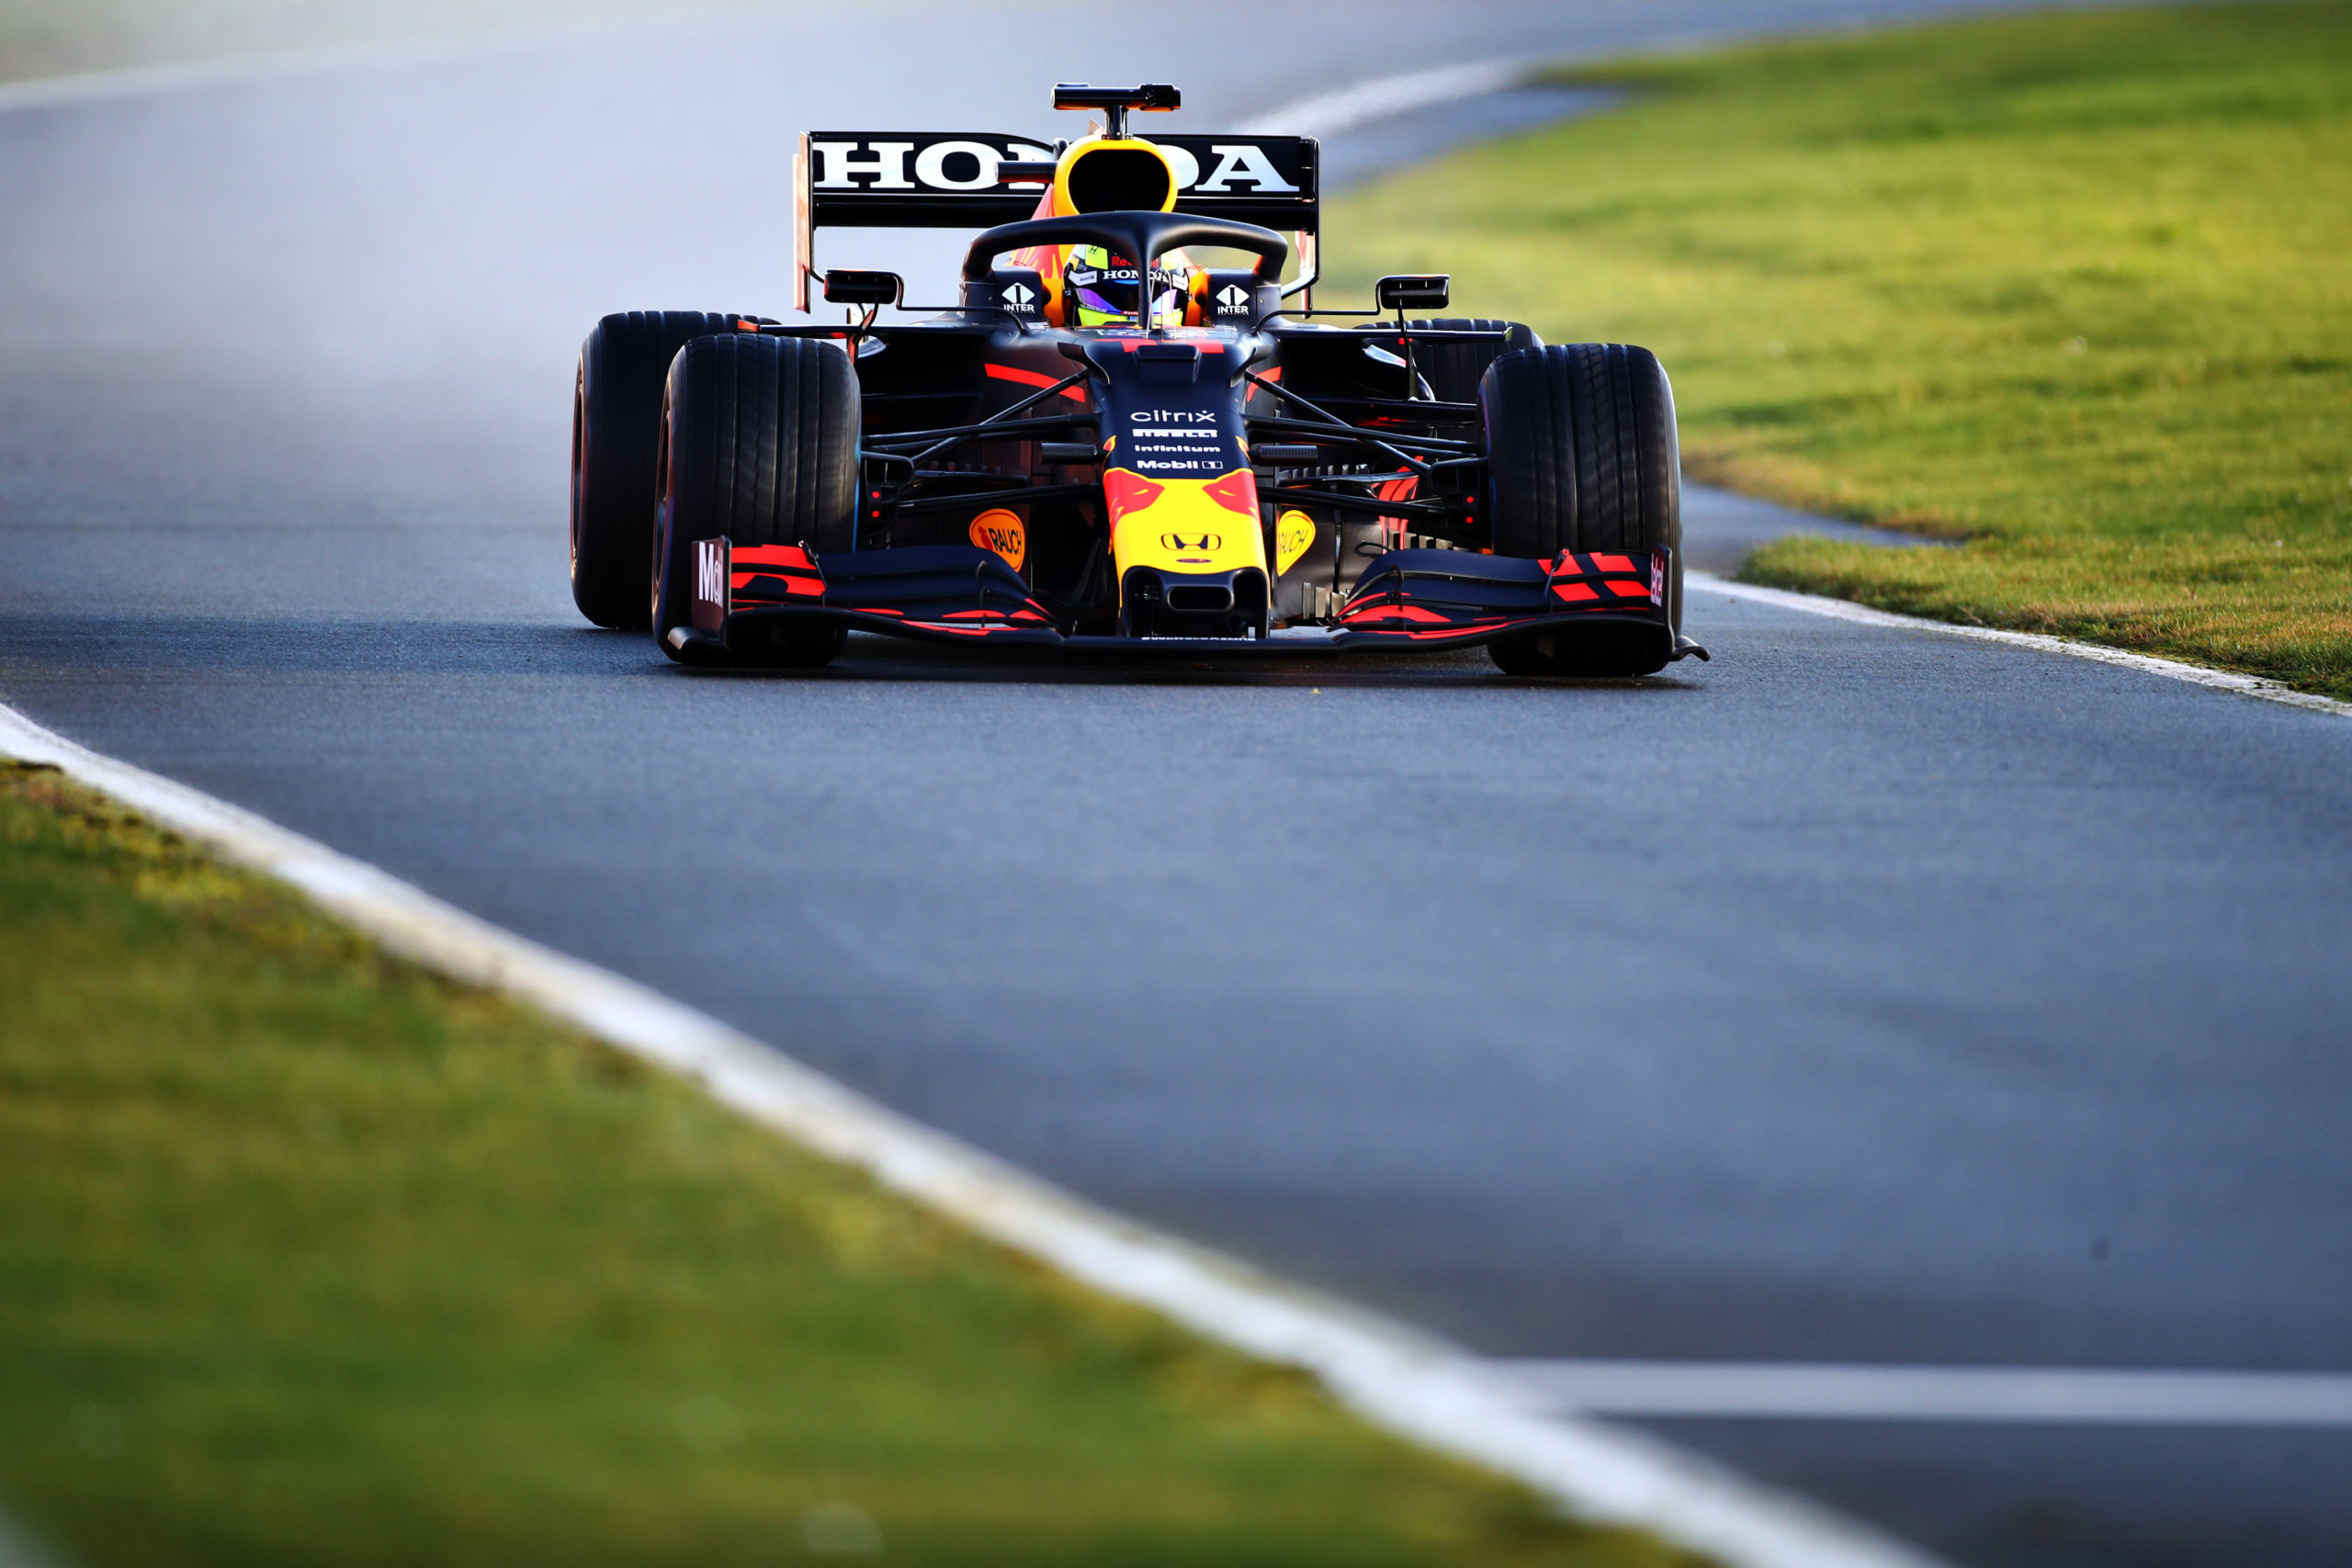 NORTHAMPTON, ENGLAND - FEBRUARY 22: Sergio Perez of Mexico driving the (11) Red Bull Racing RB15 Honda at Silverstone on February 22, 2021 in Northampton, England. (Photo by Bryn Lennon/Getty Images for Red Bull Racing) // Getty Images / Red Bull Content Pool  // SI202102230173 // Usage for editorial use only //